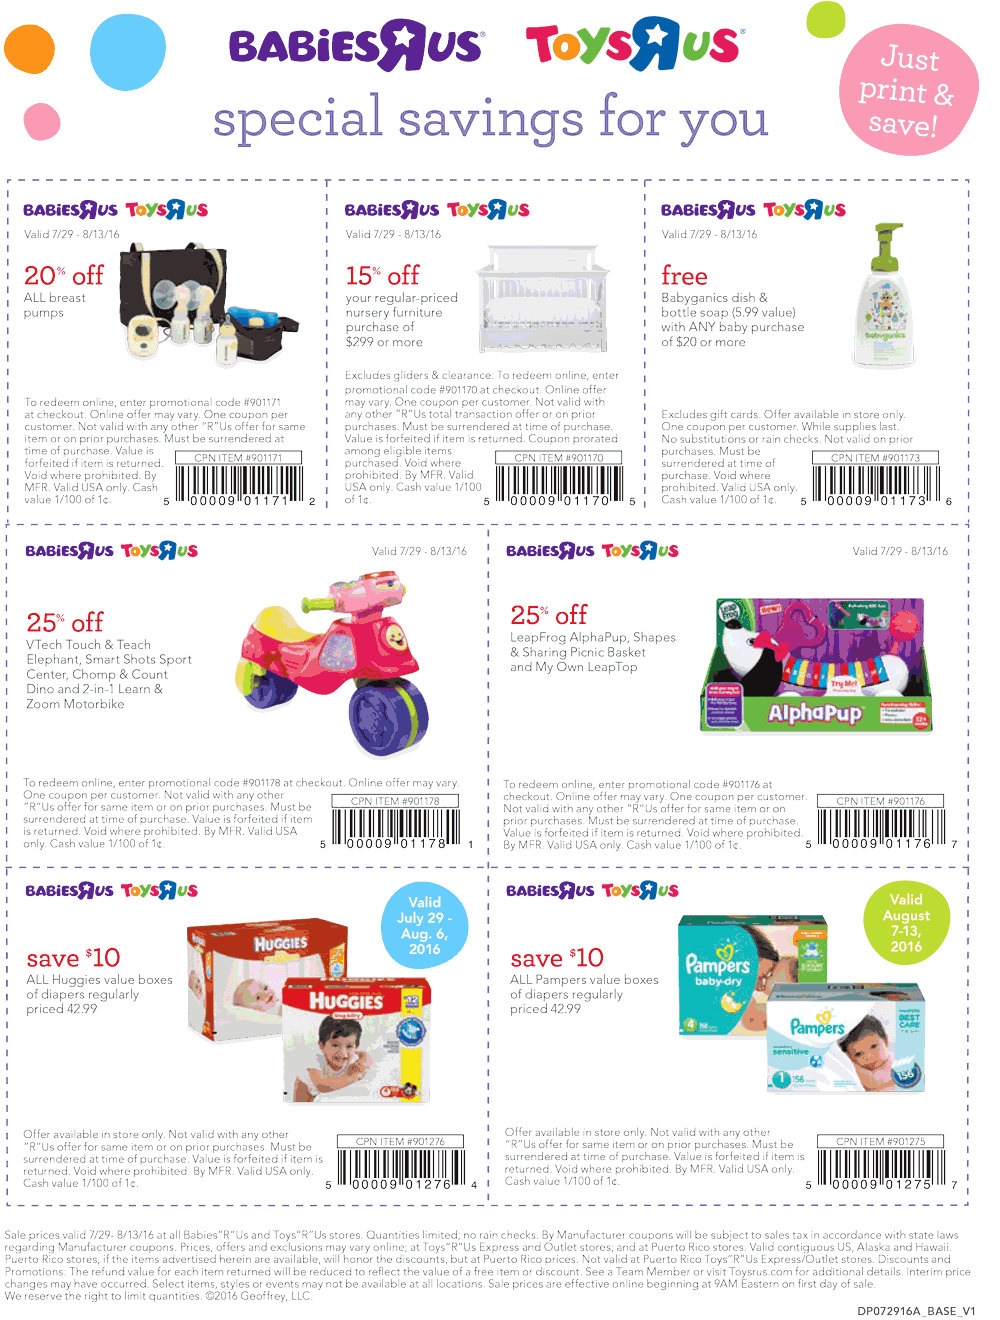 Babies R Us Coupon May 2018 $10 off diapers & more at Toys R Us & Babies R Us